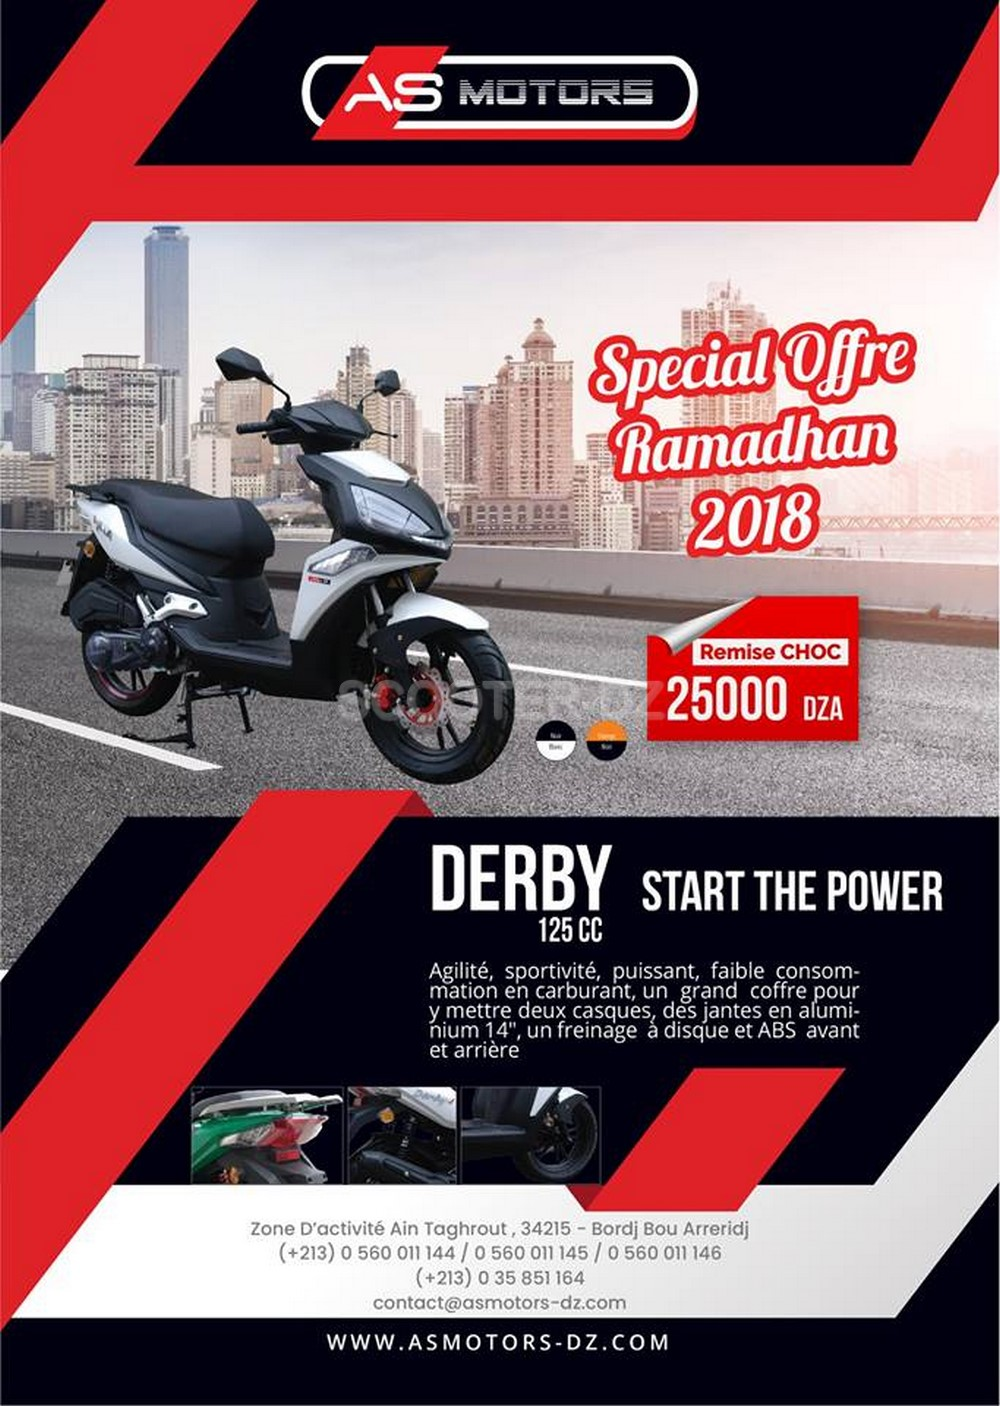 AS Motors : remise de 25.000 dinars sur le scooter, Derby 125